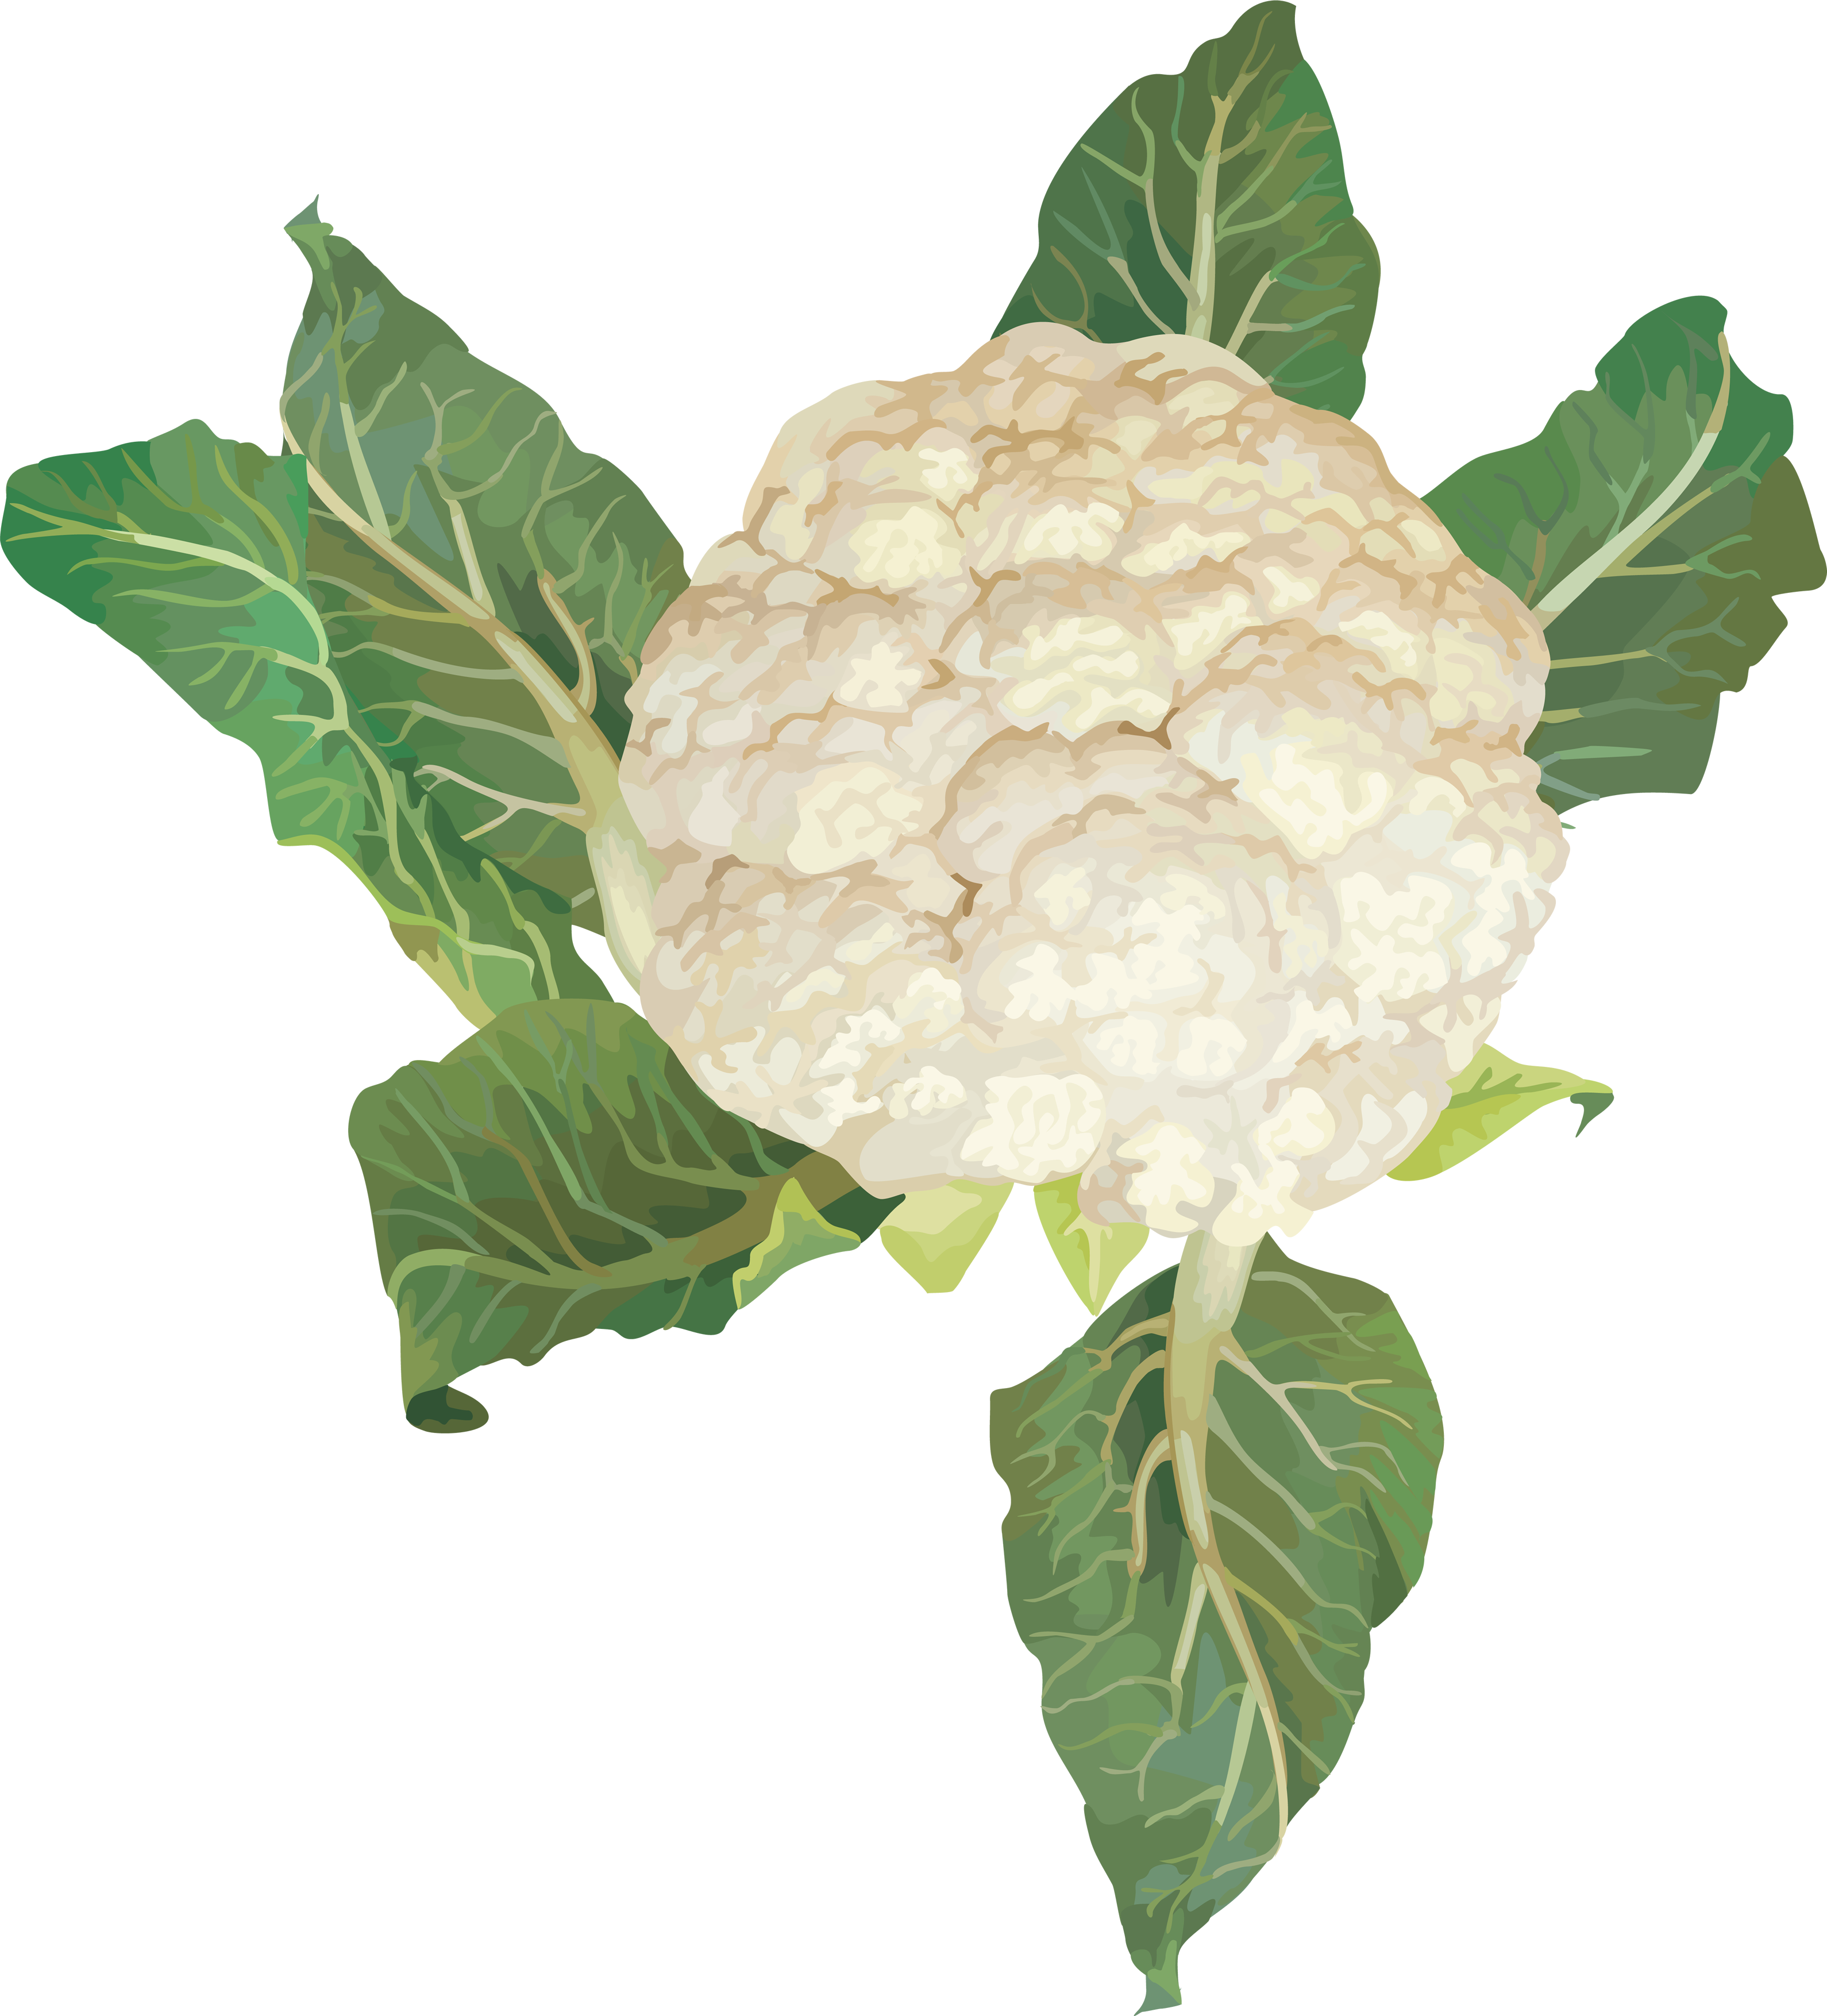 Png image free download. Cabbage clipart cauliflower